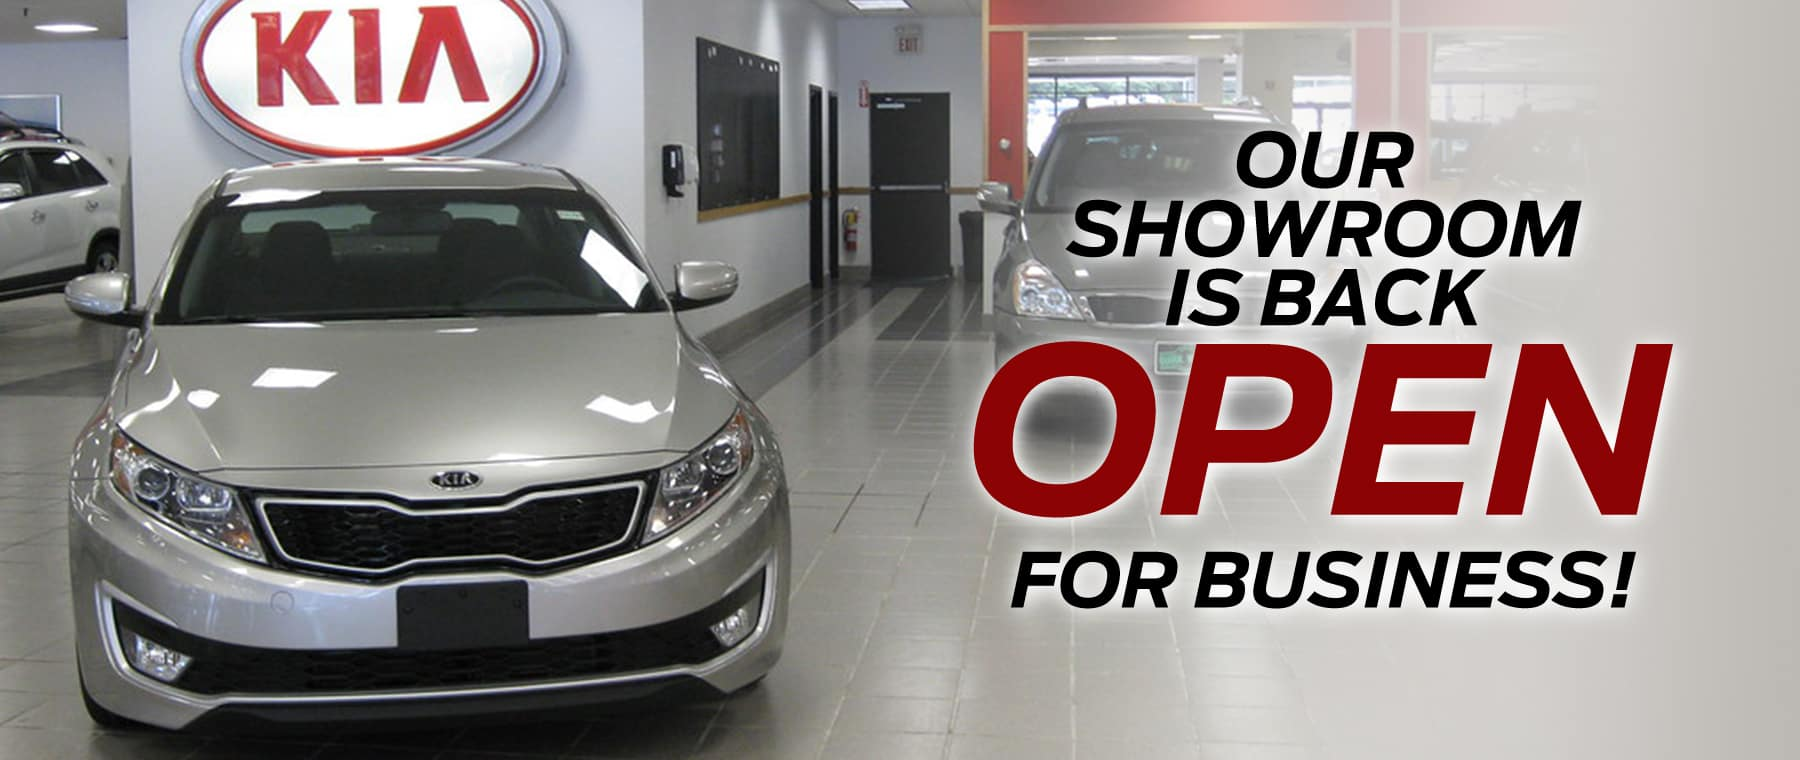 Kia dealer in Greensburg PA is now open for Sales and Service